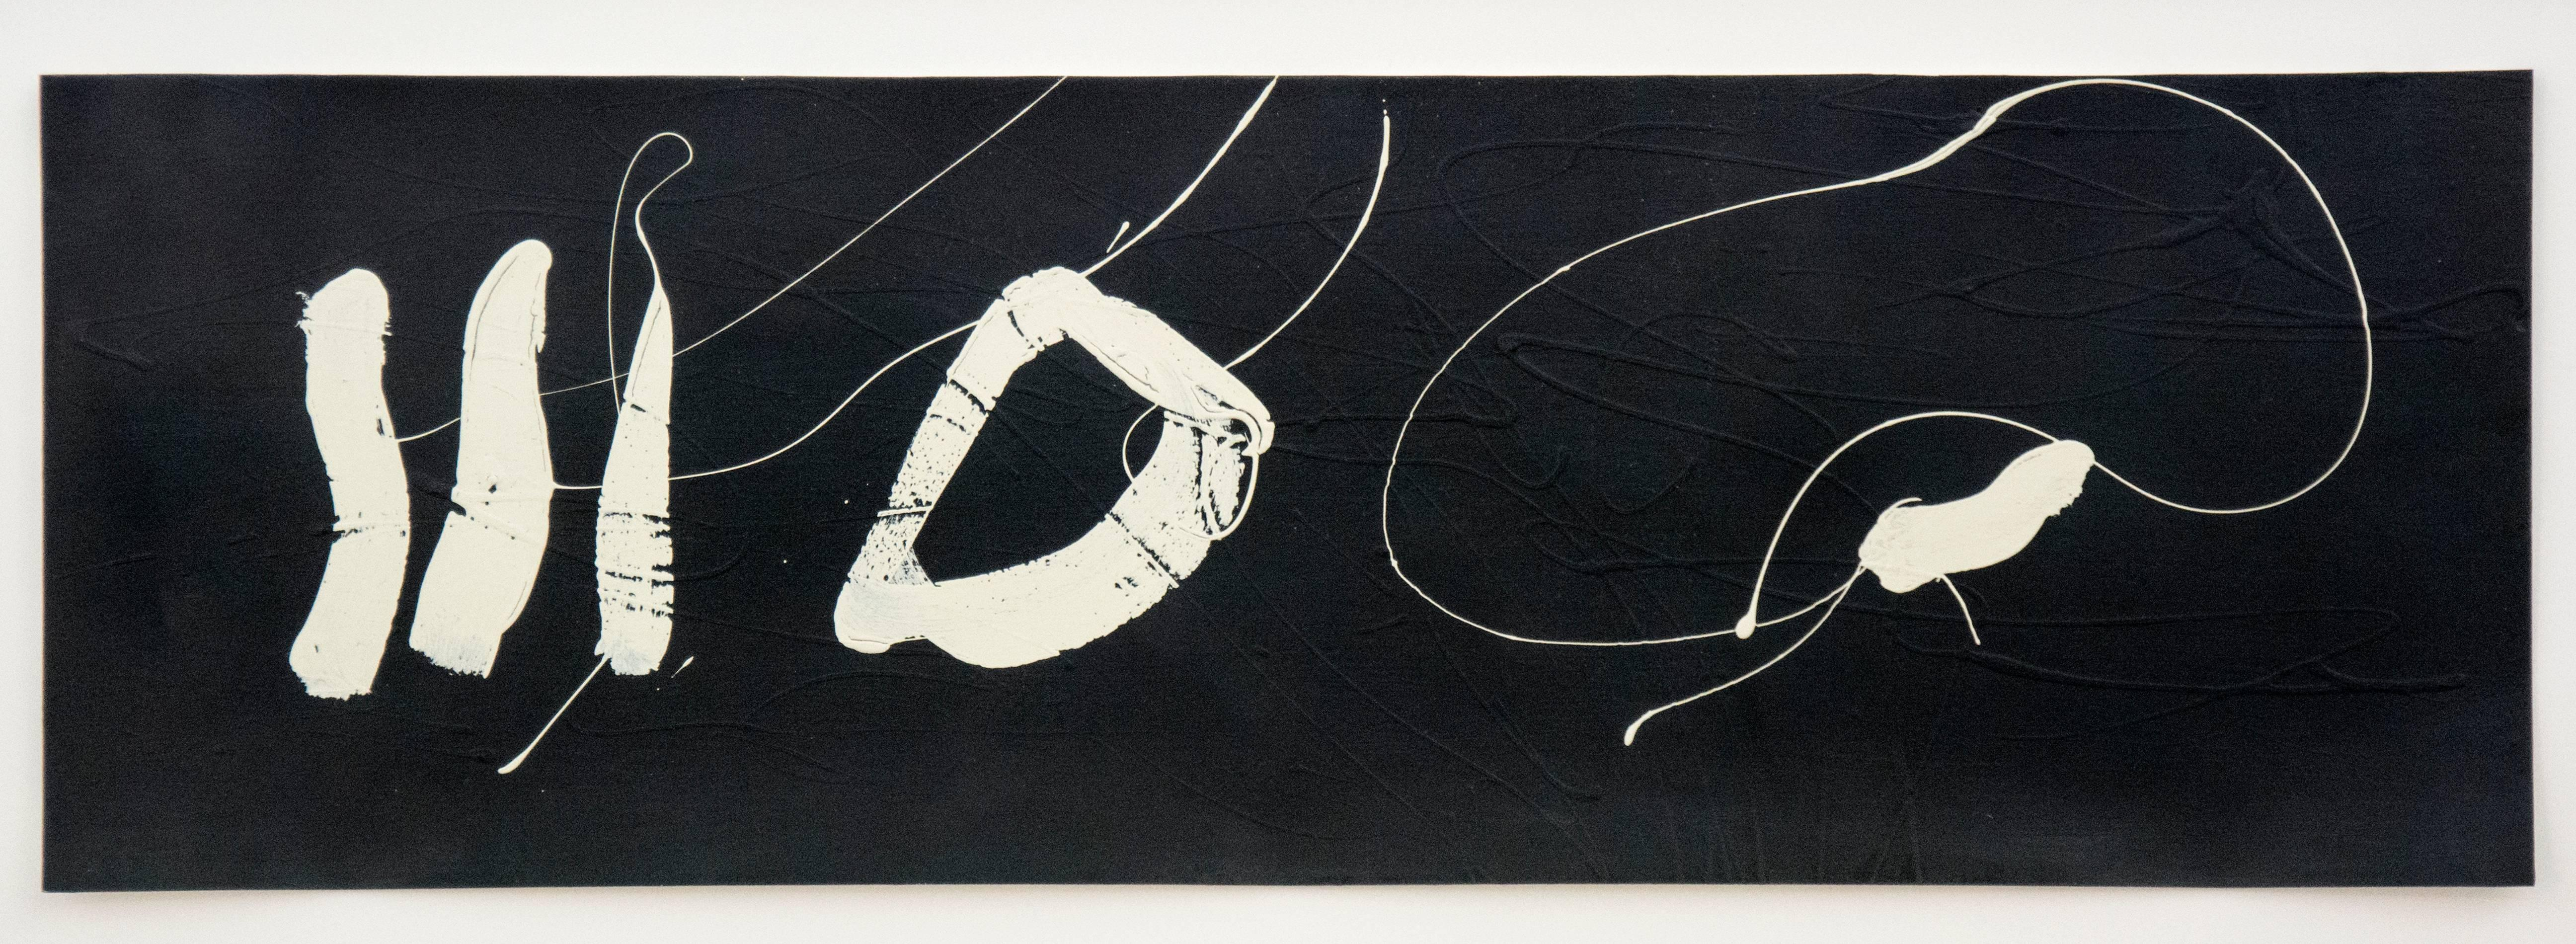 Sumi-e No 04 - black and white, minimalist, gestural, abstract acrylic on paper